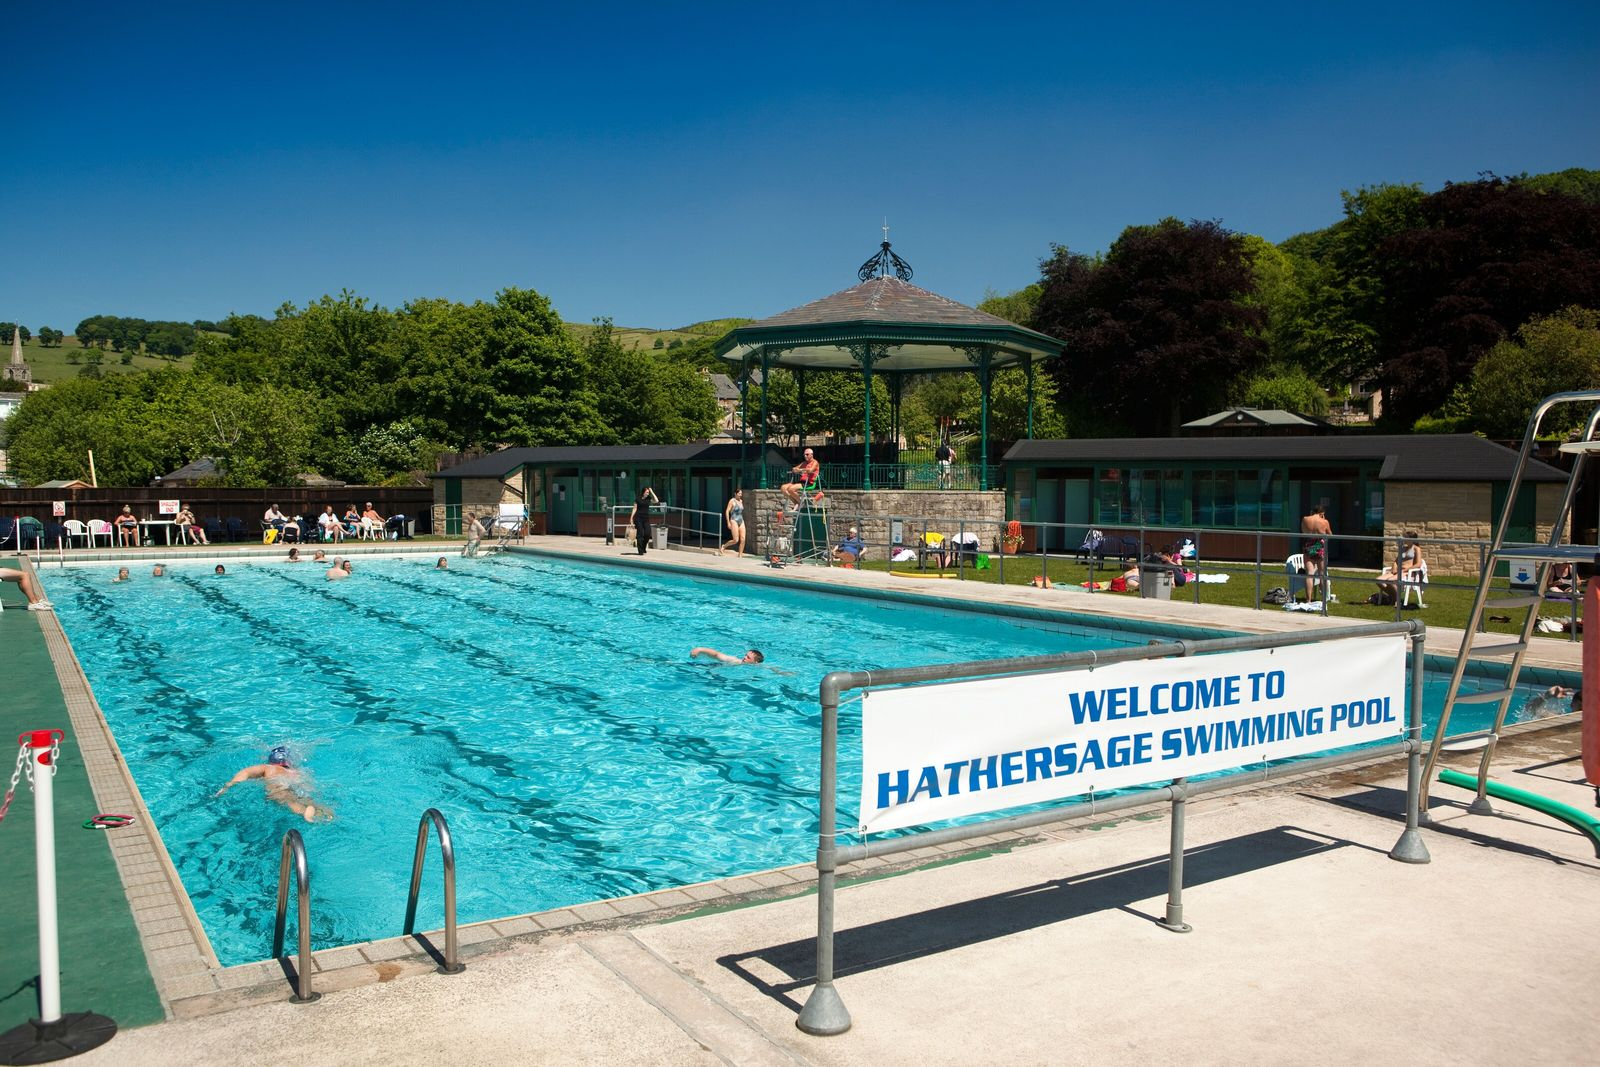 Hathersage's historicswimming poolfeatures quaint touches like a band standand a retro solarium.